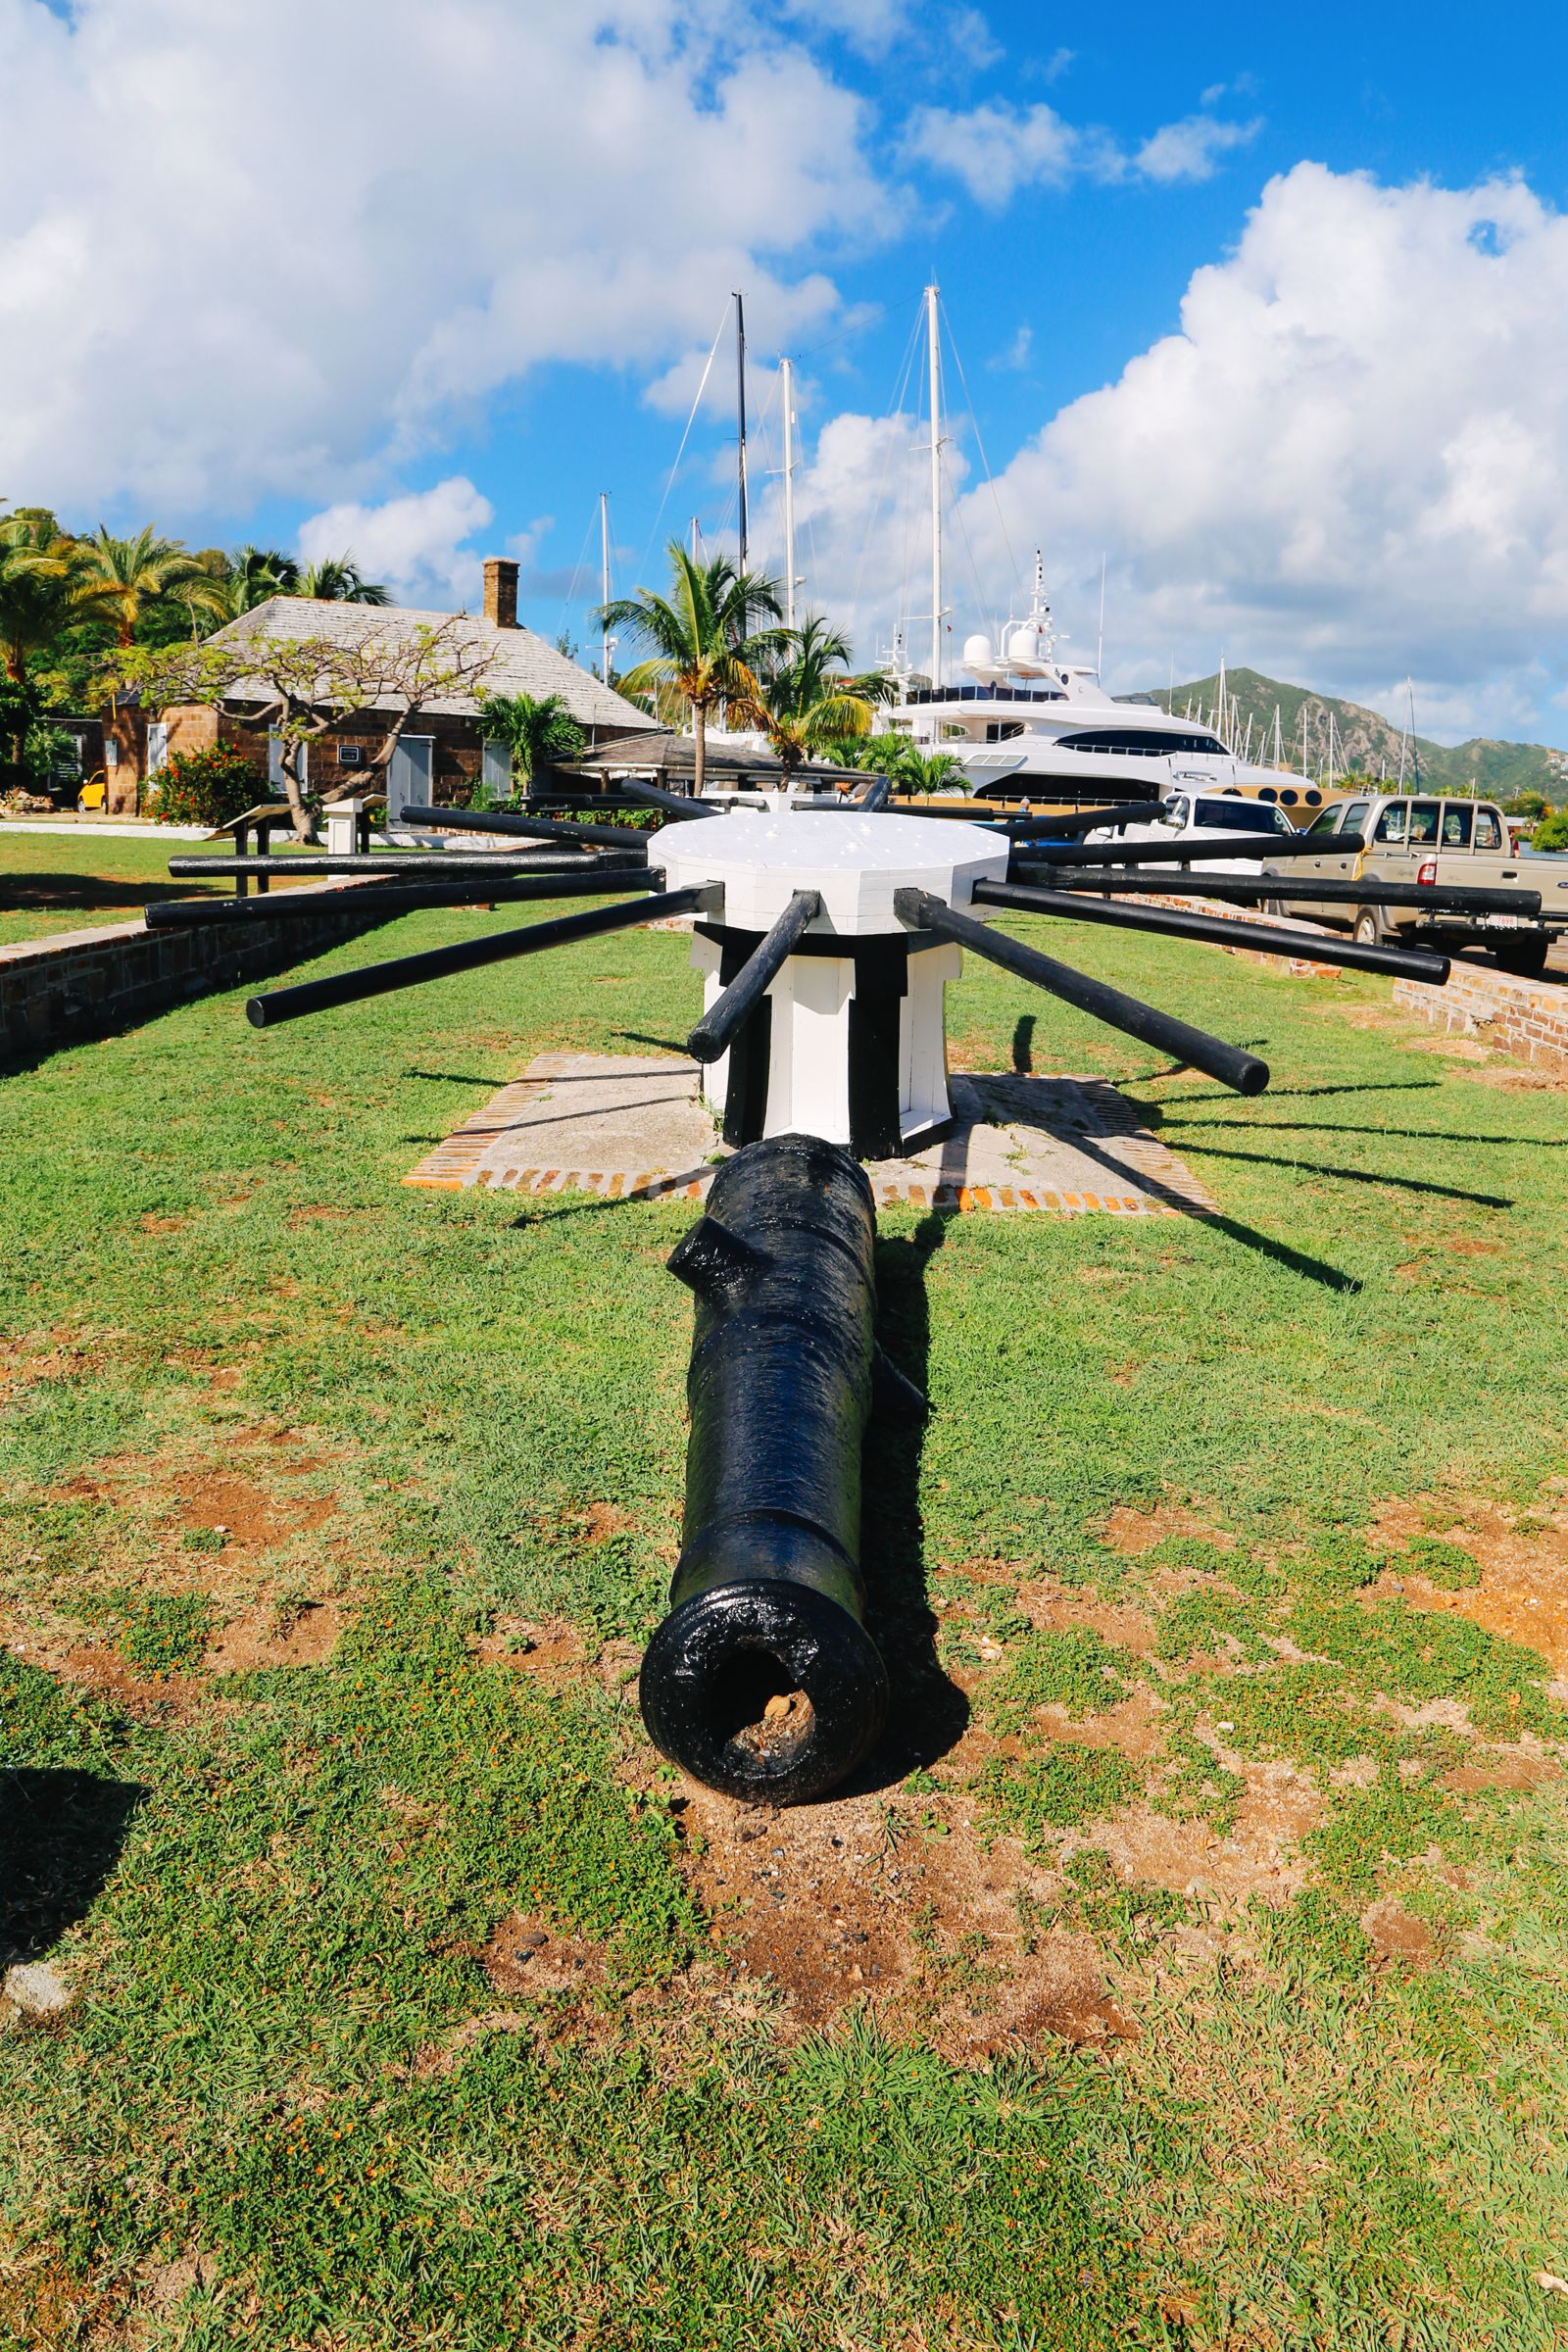 Exploring The Caribbean Island Of Antigua By Land - Part 1 (6)